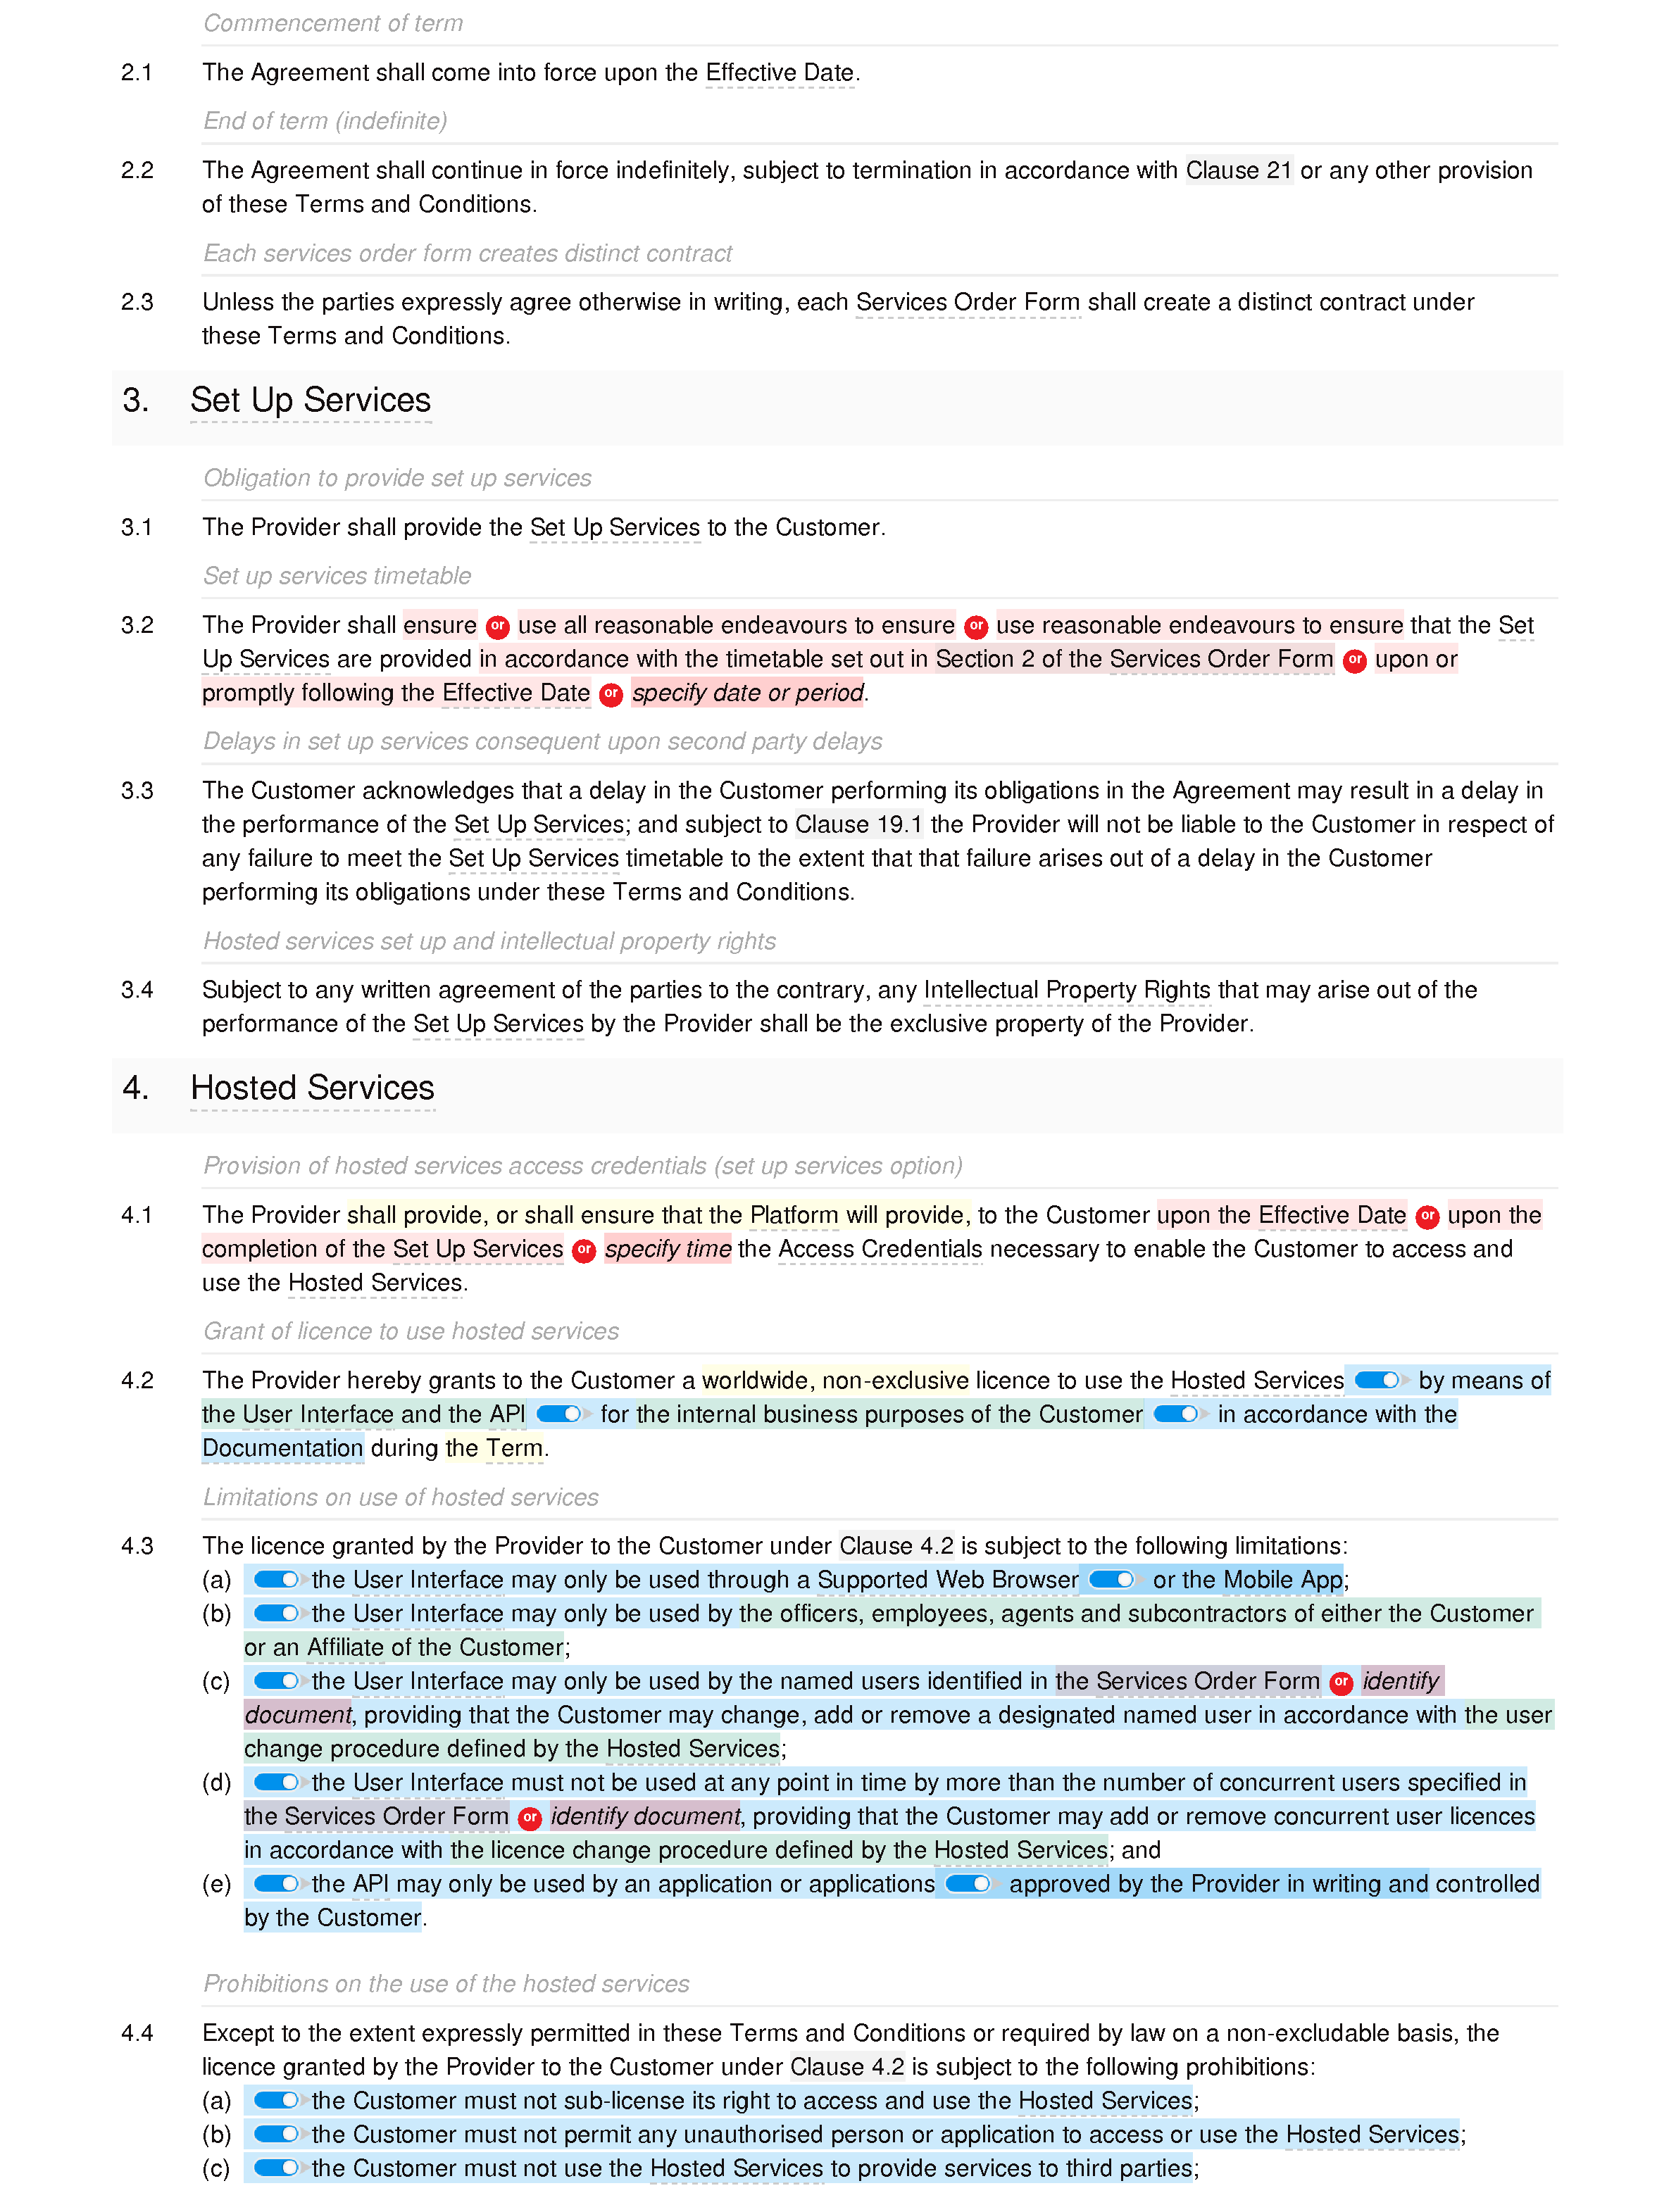 SaaS terms and conditions (standard) document editor preview